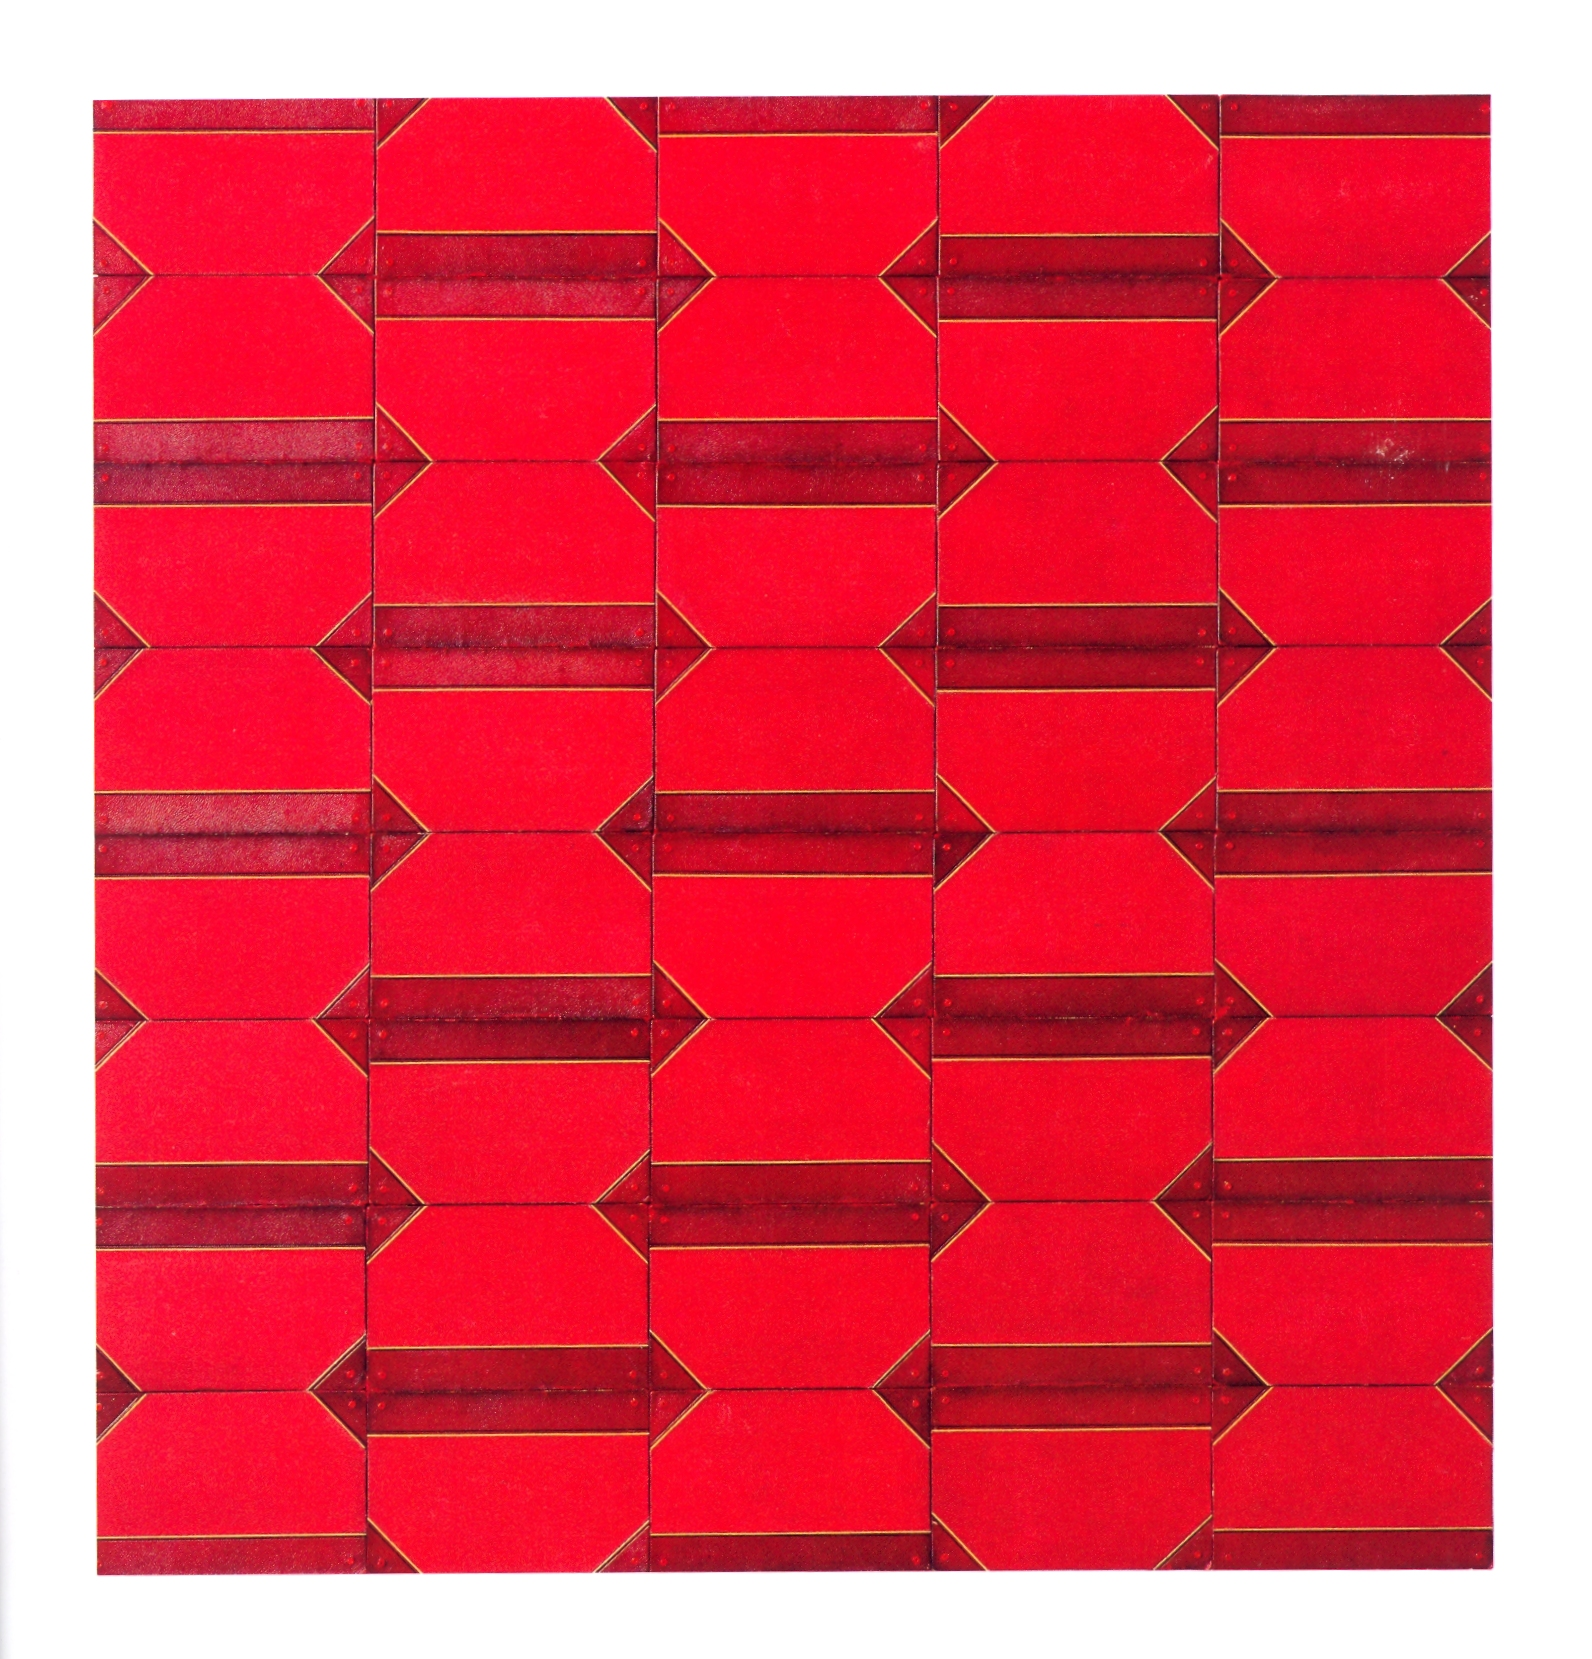 """The Arrow that Cannot be Removed    antique book covers on wood, 44 1/2""""x47""""x1 1/2"""", 2004"""